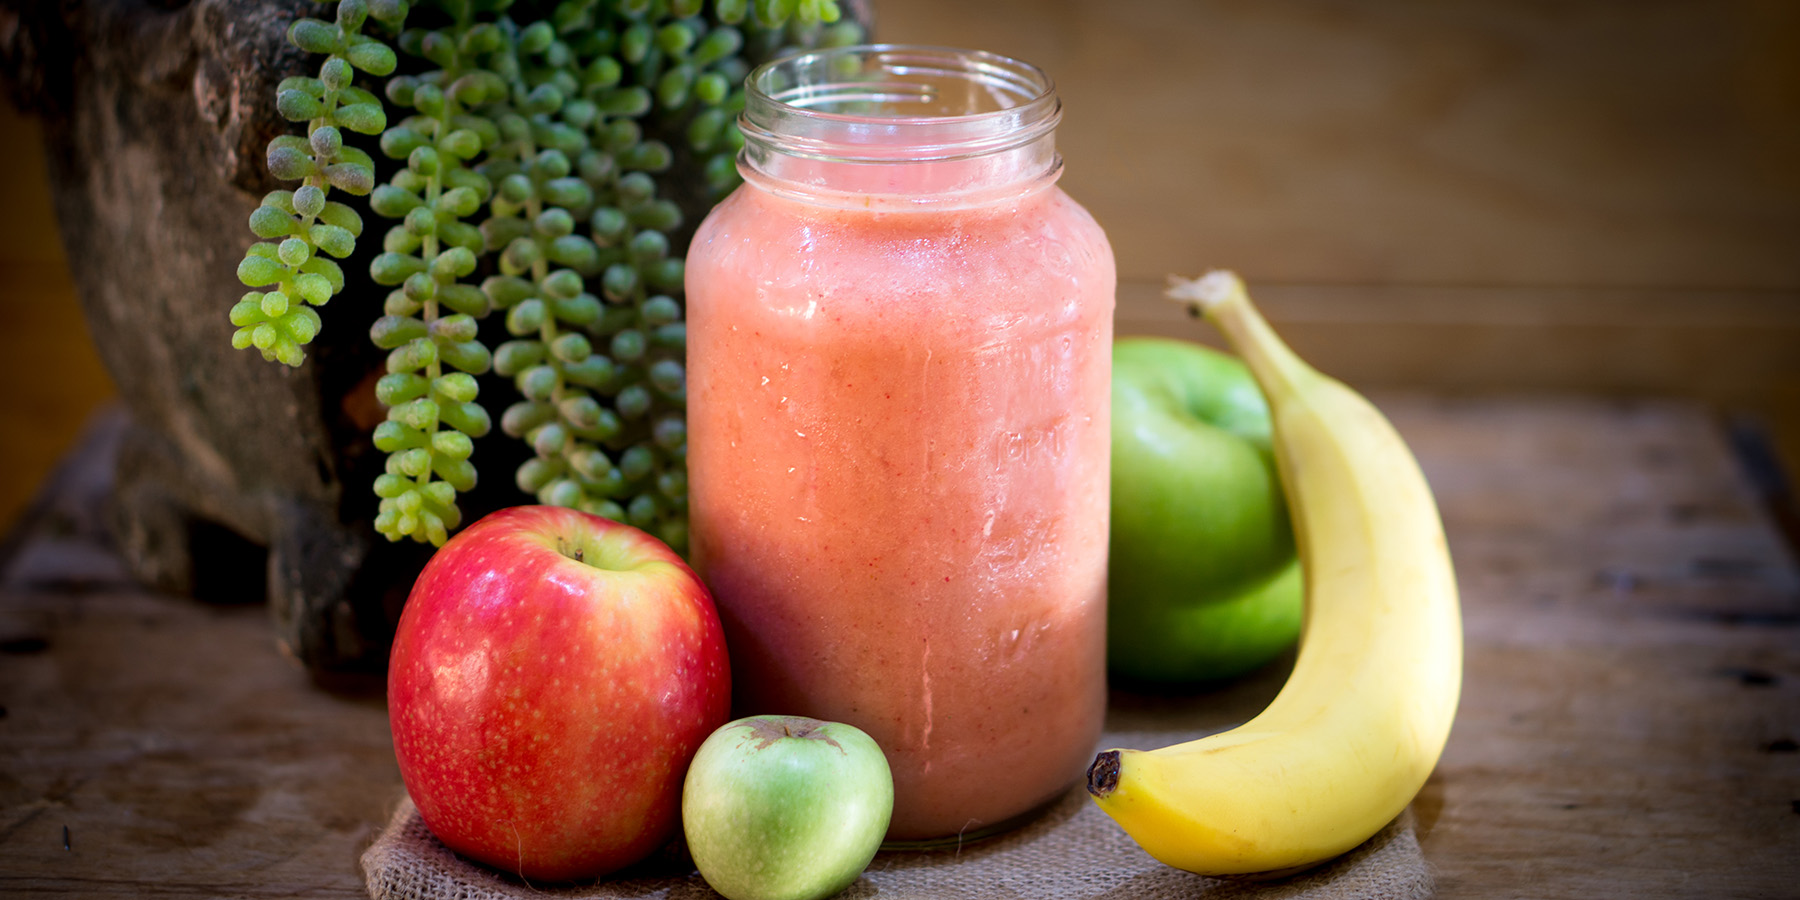 The Bapple Berry Smoothie